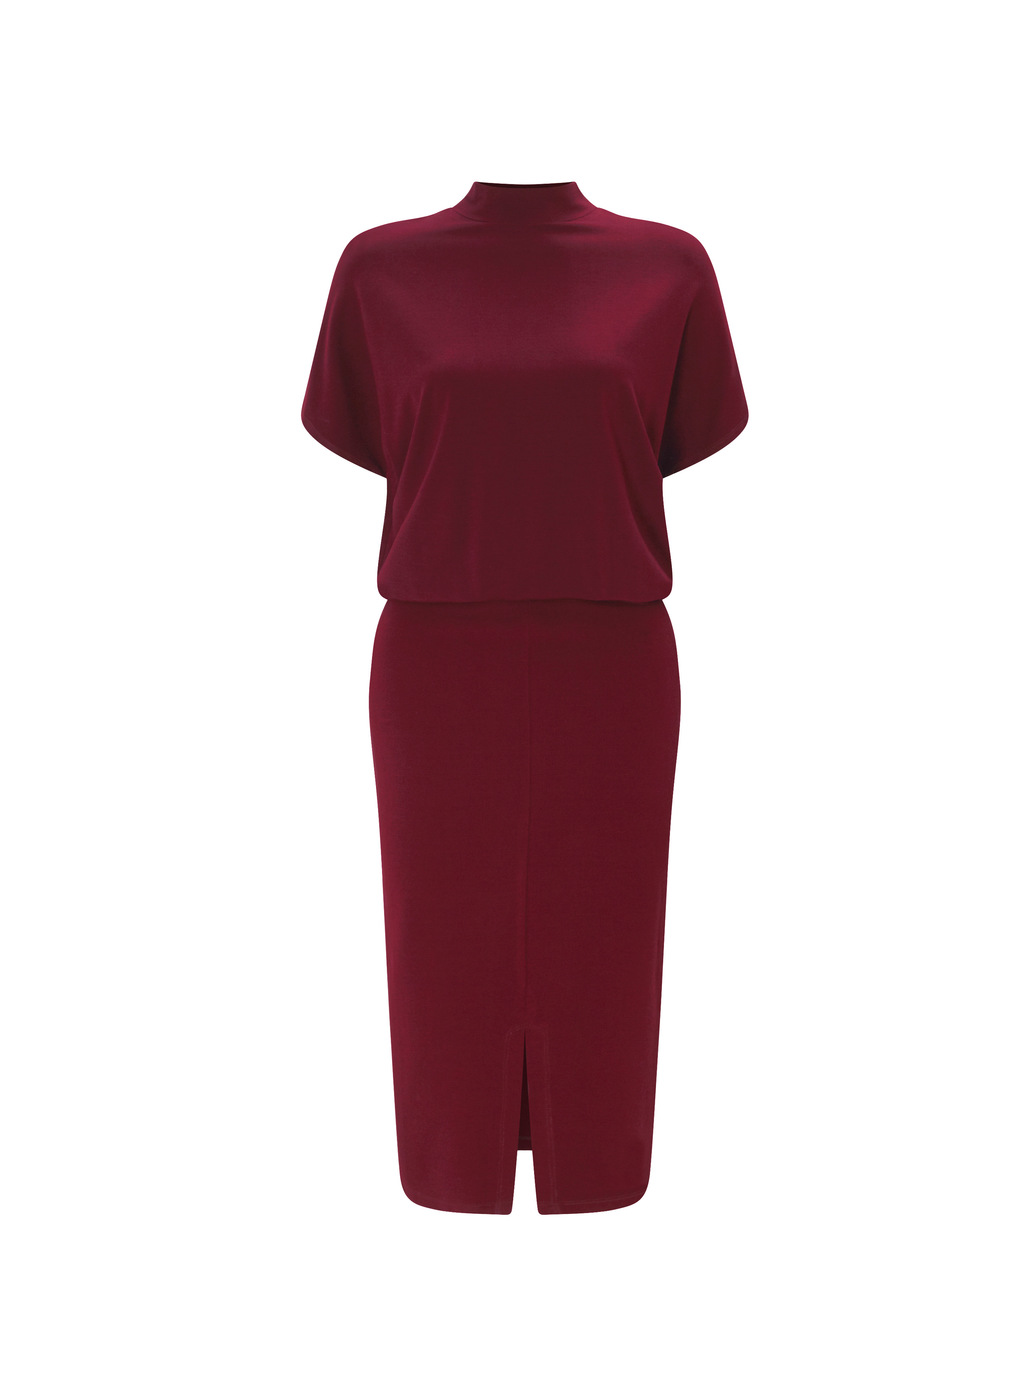 Womenswear Bernwood Shift Dress - style: shift; length: below the knee; sleeve style: dolman/batwing; fit: tailored/fitted; pattern: plain; neckline: high neck; predominant colour: burgundy; occasions: evening, occasion; fibres: polyester/polyamide - 100%; hip detail: slits at hip; sleeve length: short sleeve; texture group: crepes; pattern type: fabric; season: a/w 2016; wardrobe: event